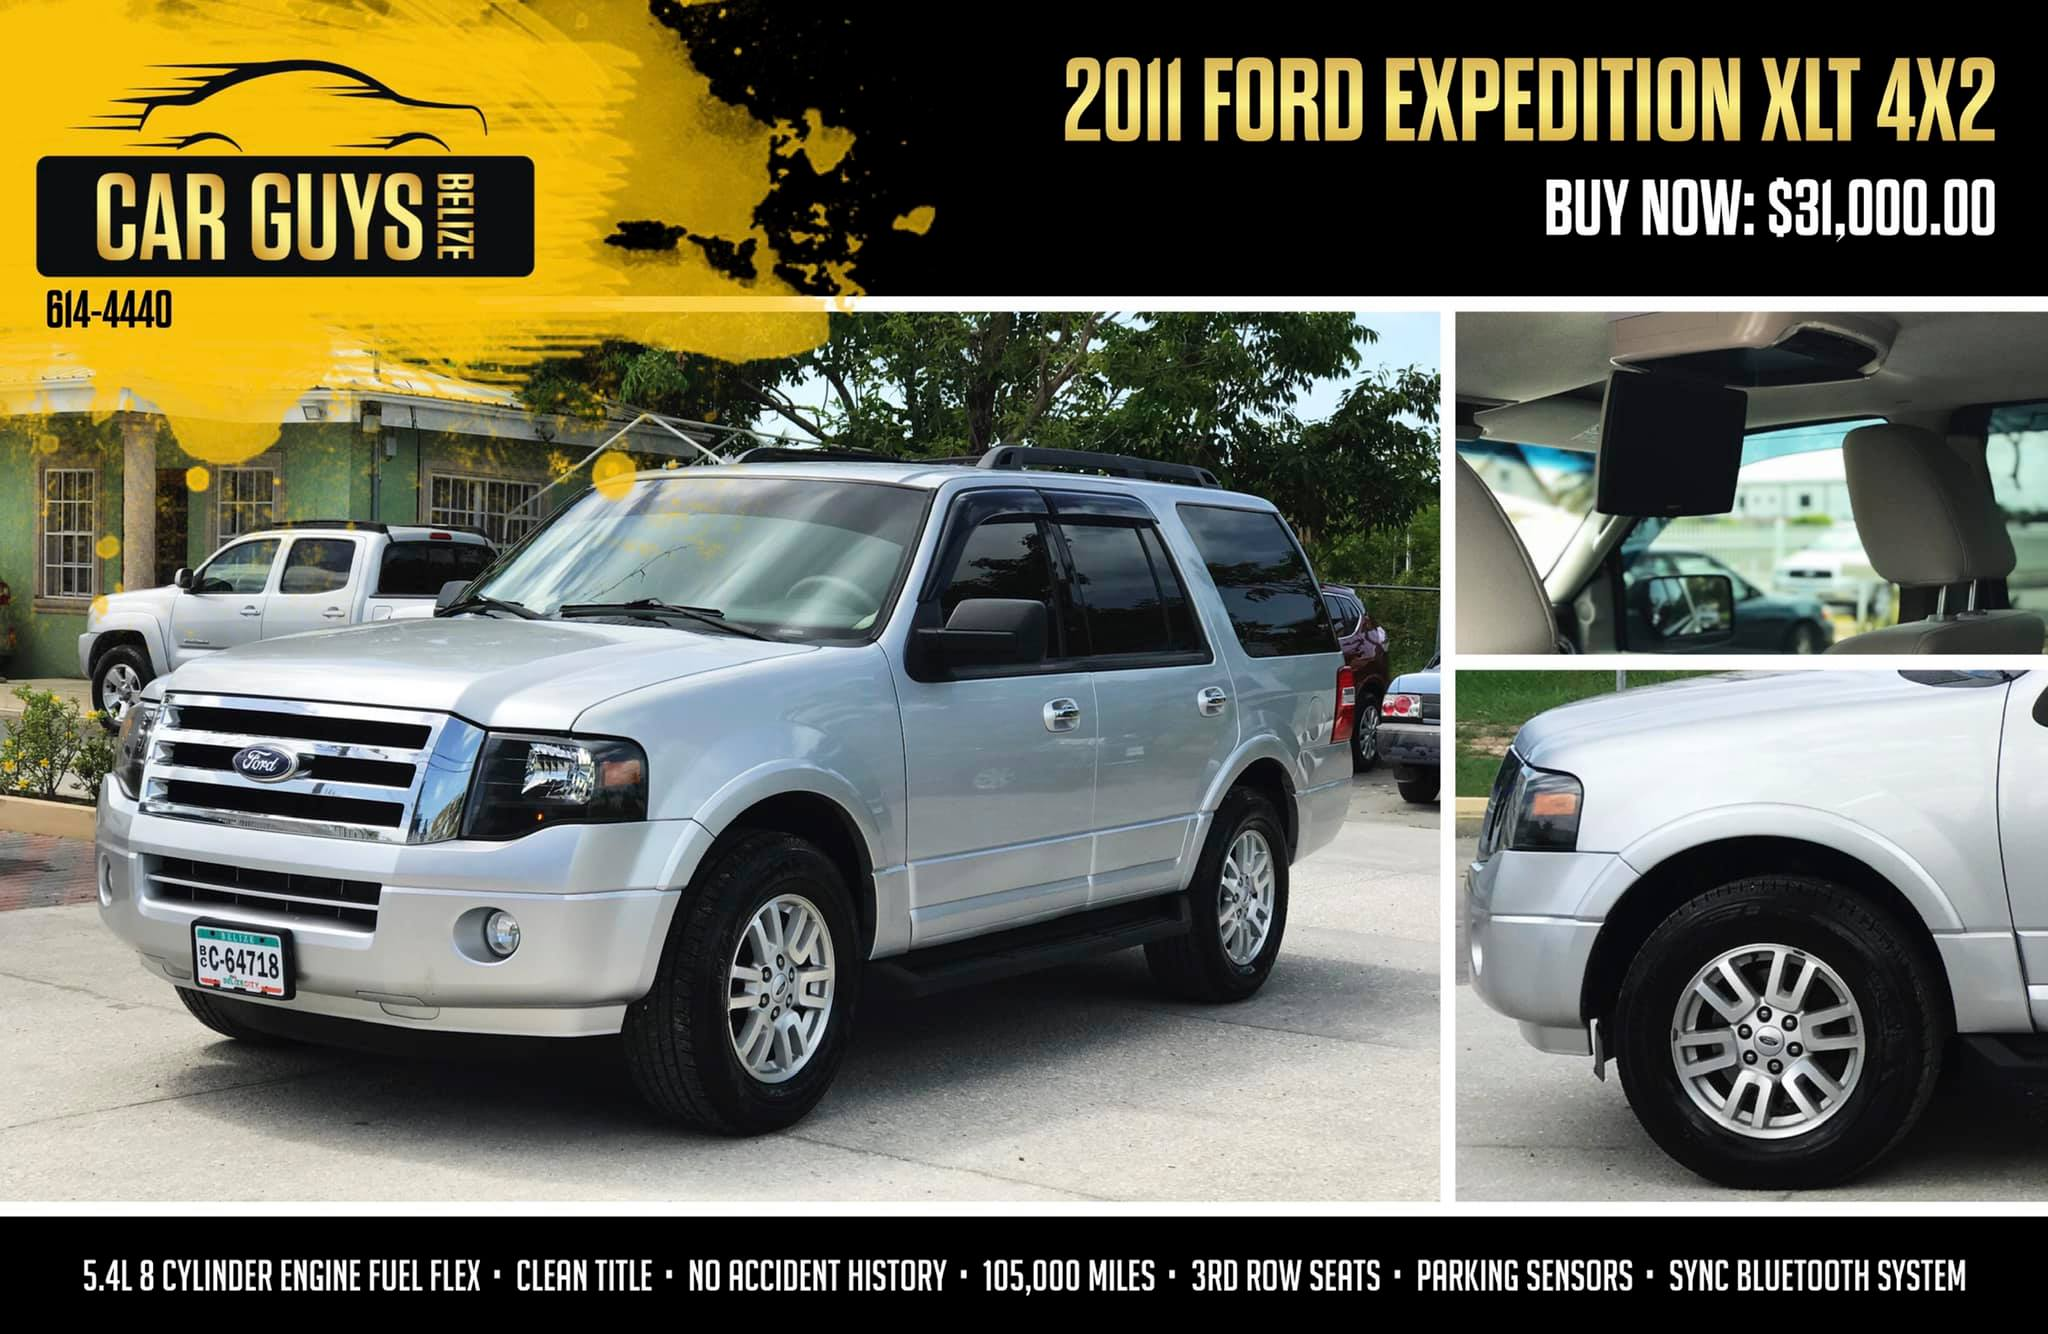 Perfect Family Truck! - 2011 Ford Expedition XLT